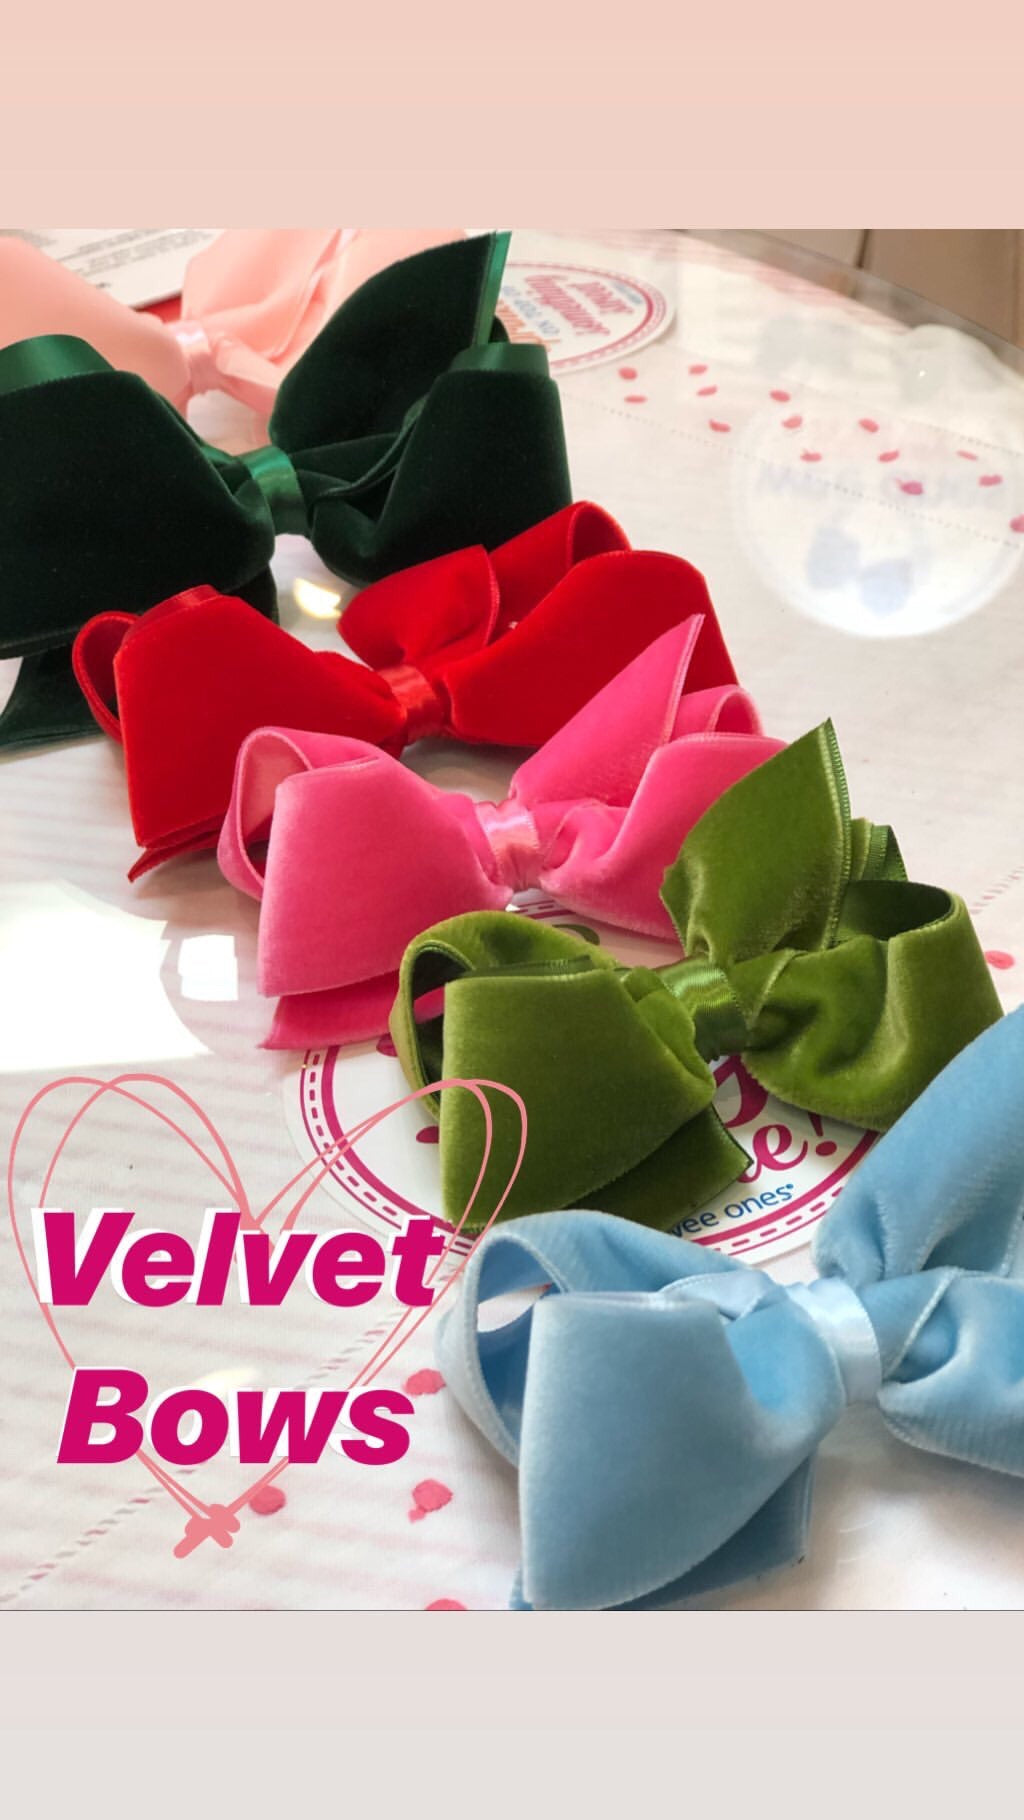 Velvet Bows by WeeOnes